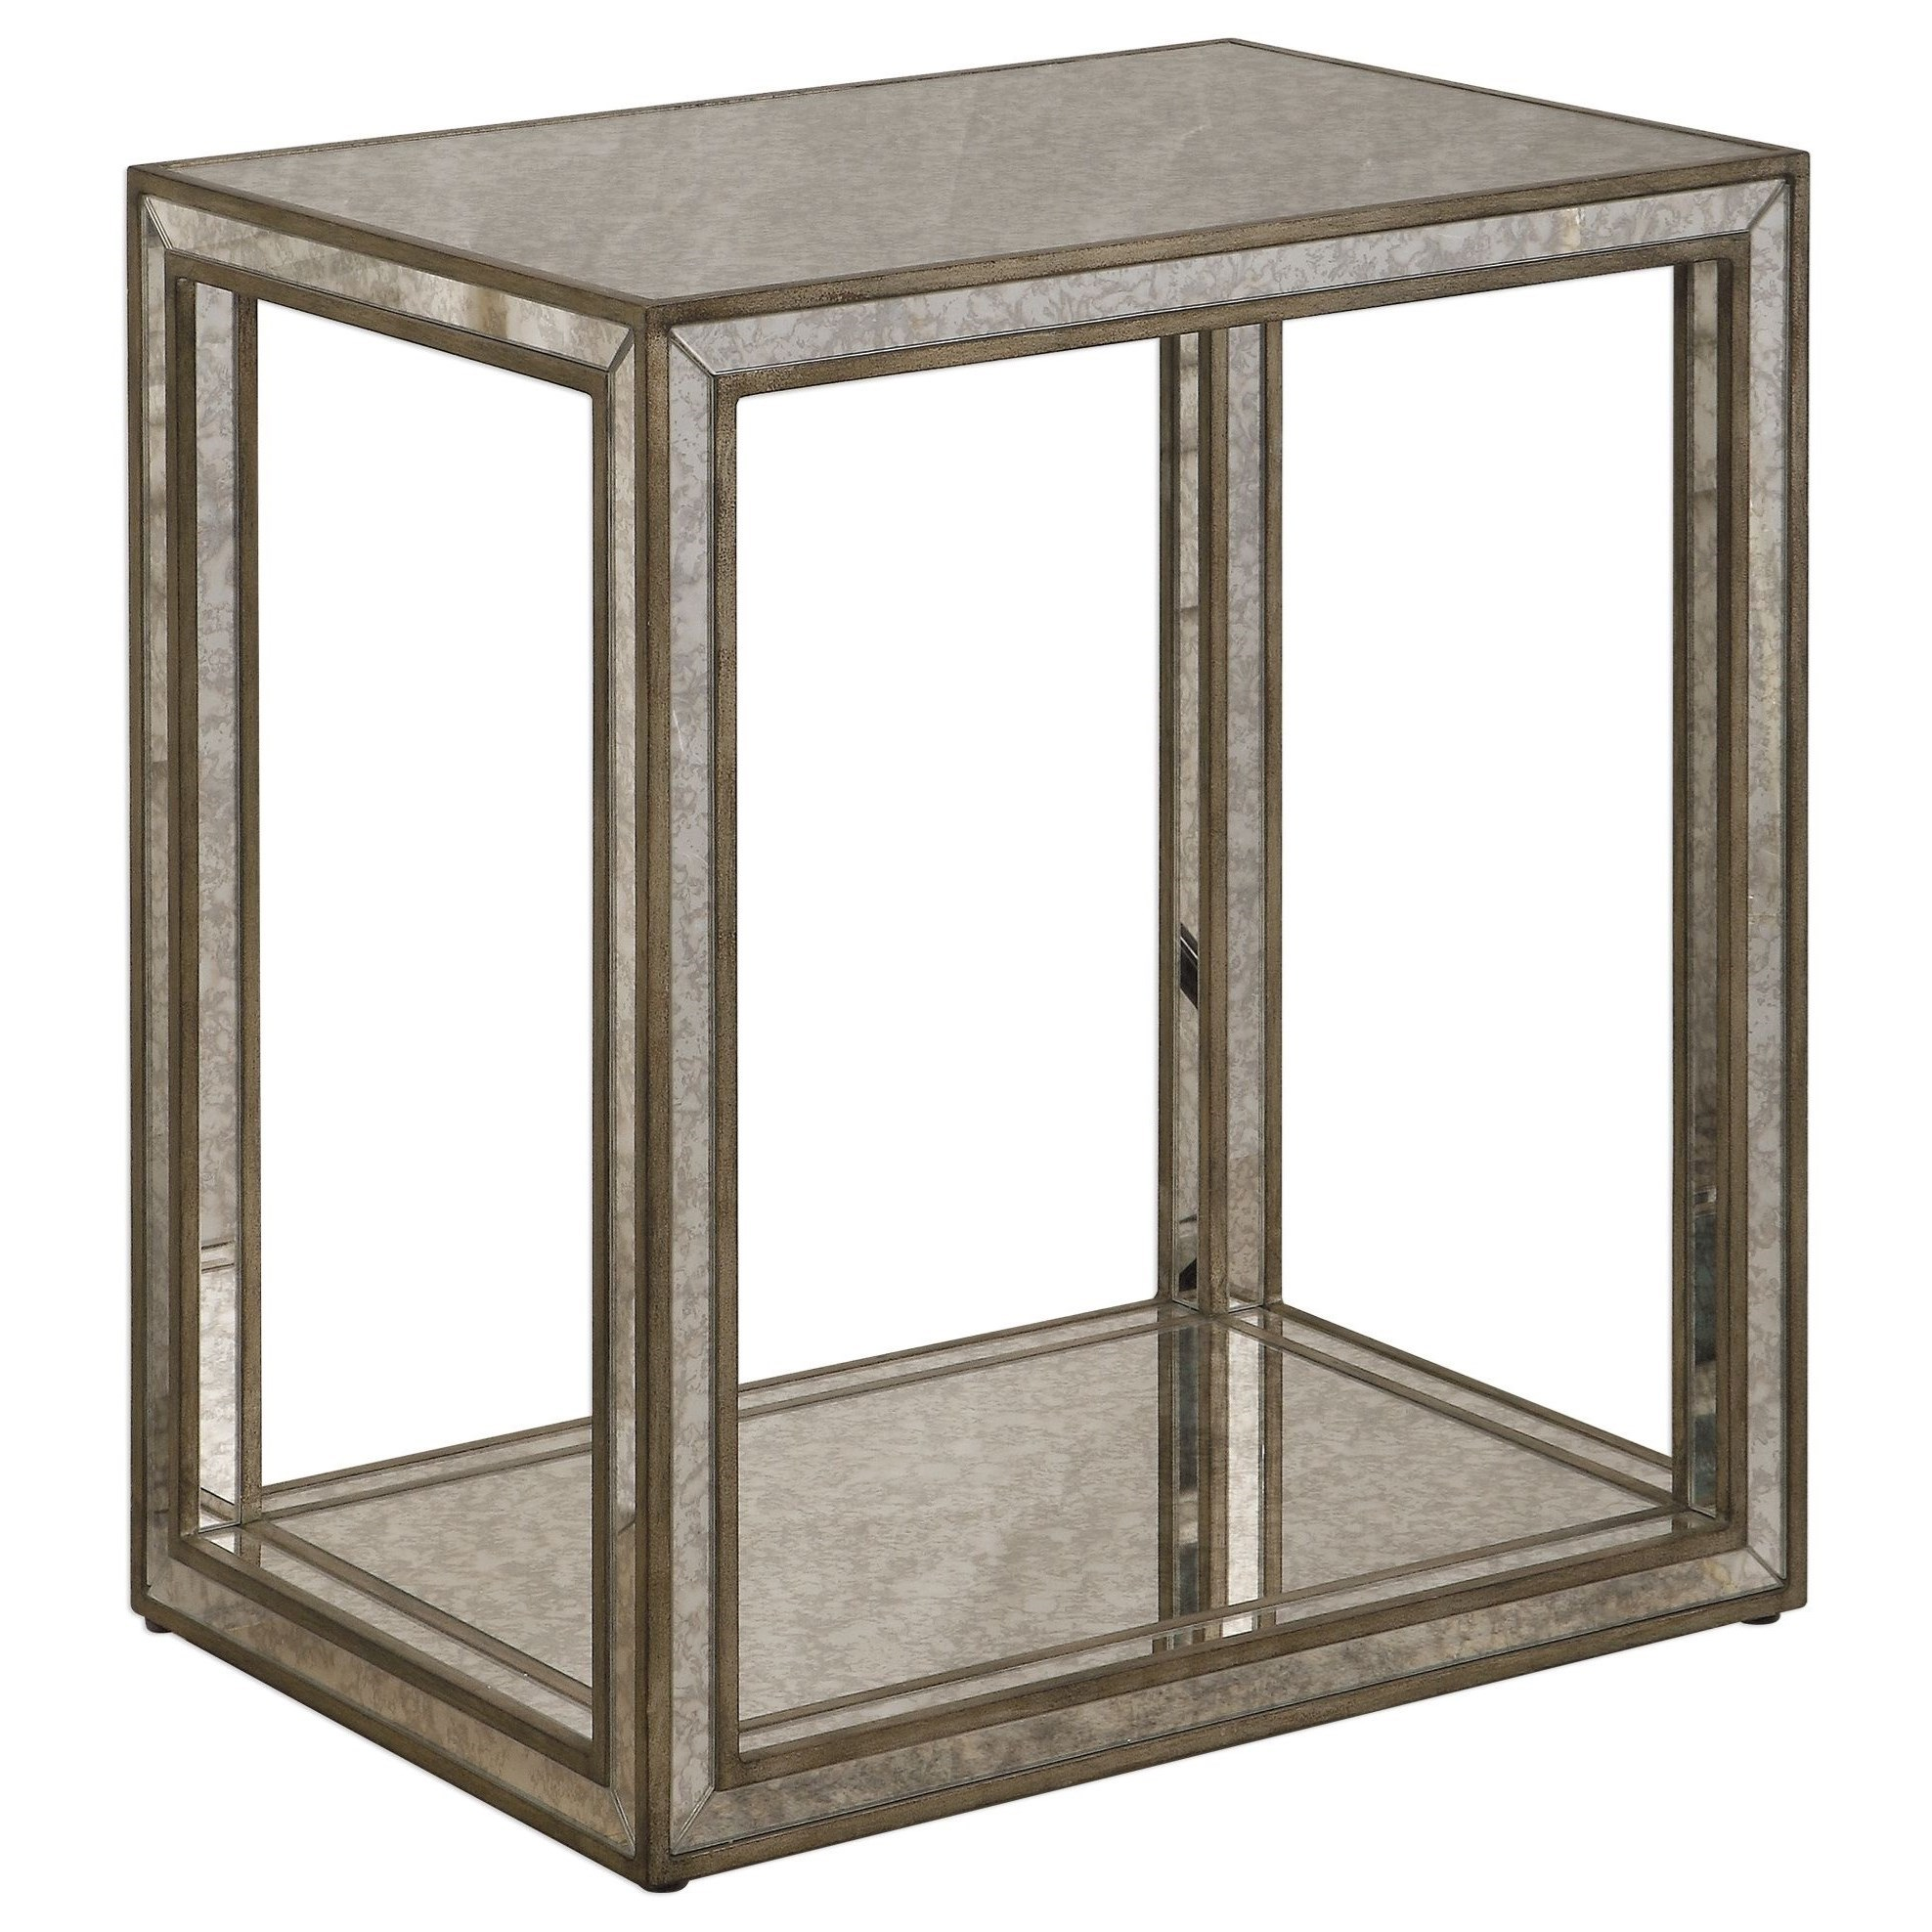 Accent Furniture - Occasional Tables Julie Mirrored End Table by Uttermost at Upper Room Home Furnishings